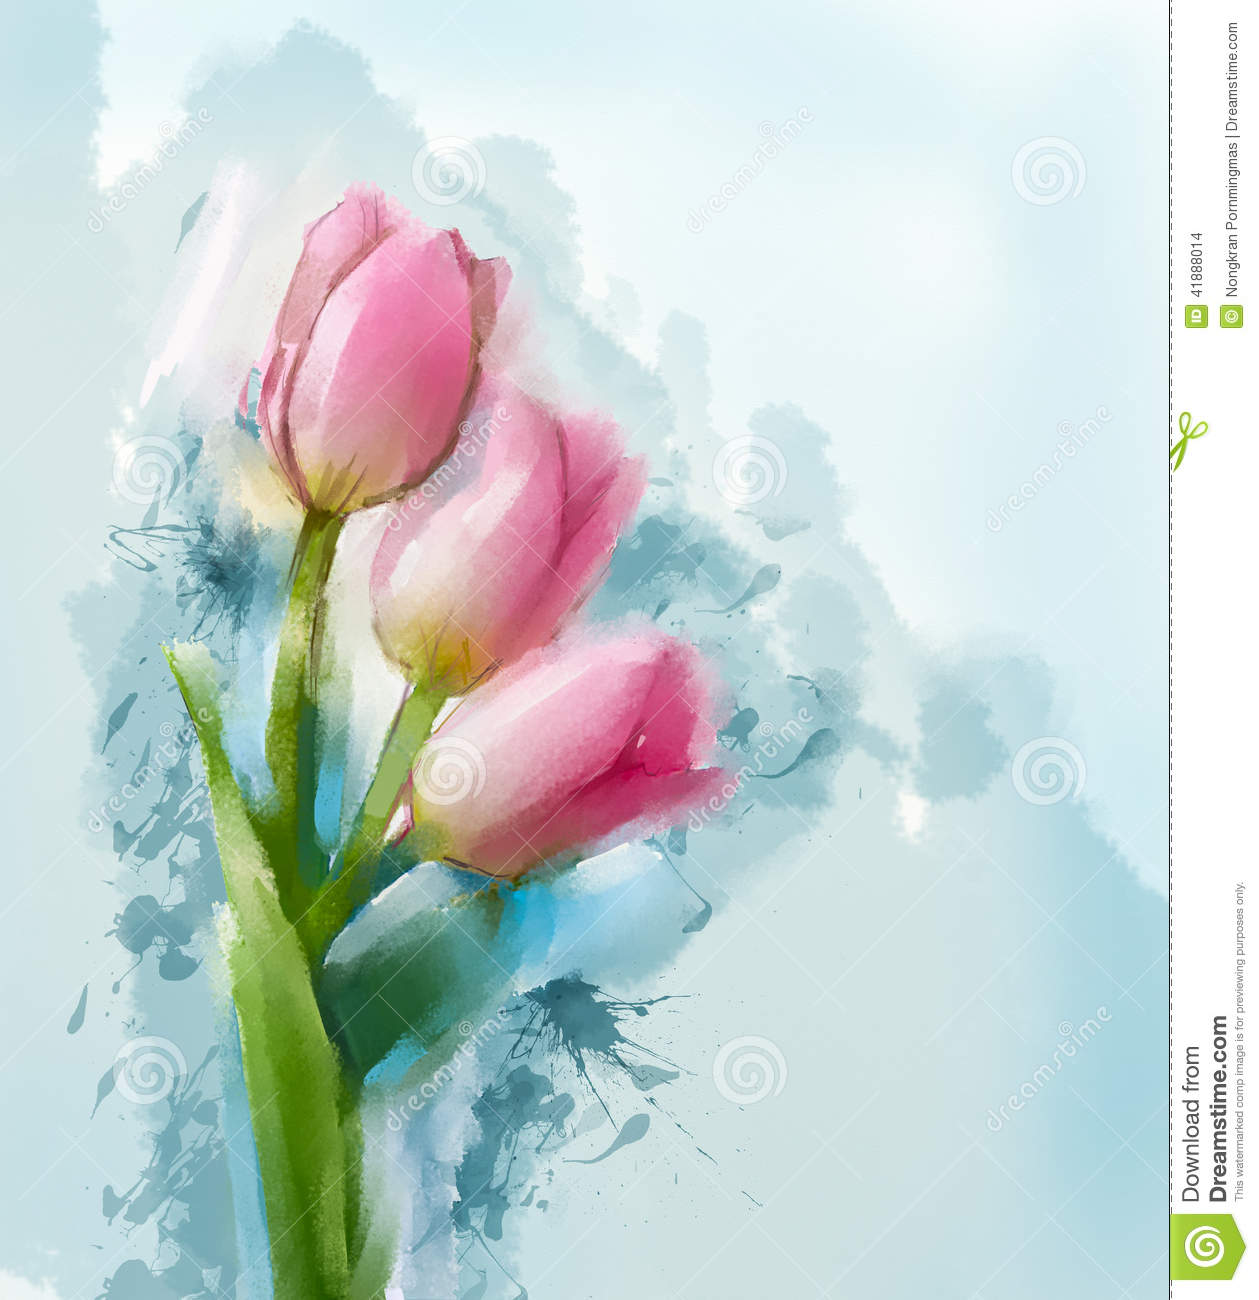 Tulips flowers painting